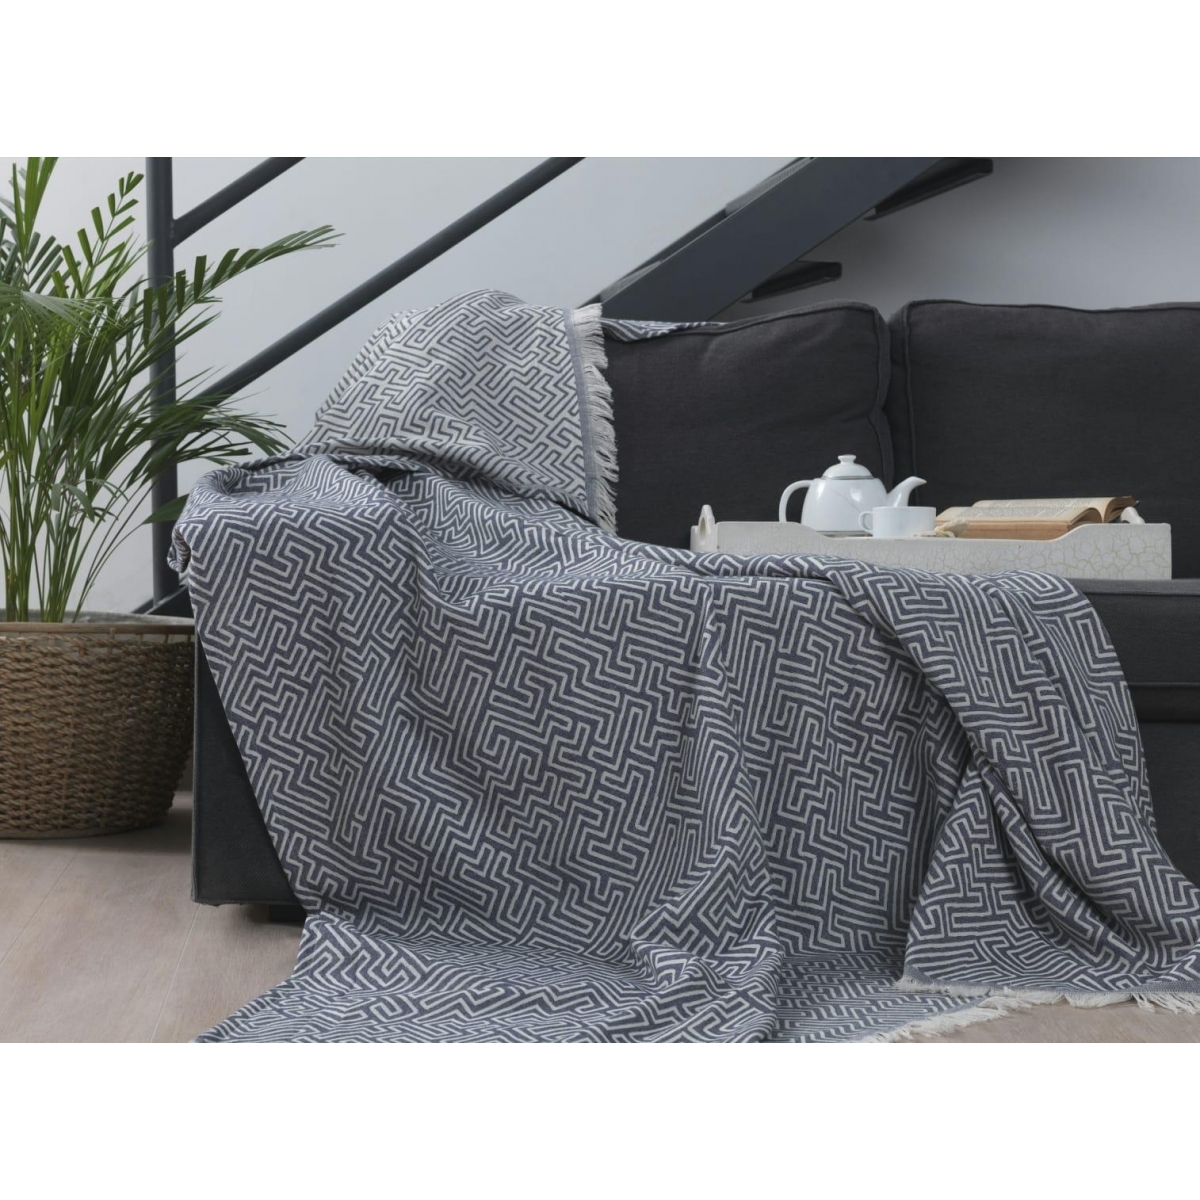 Patura din bumbac Elba E5 Grey, 220 x 240 cm imagine